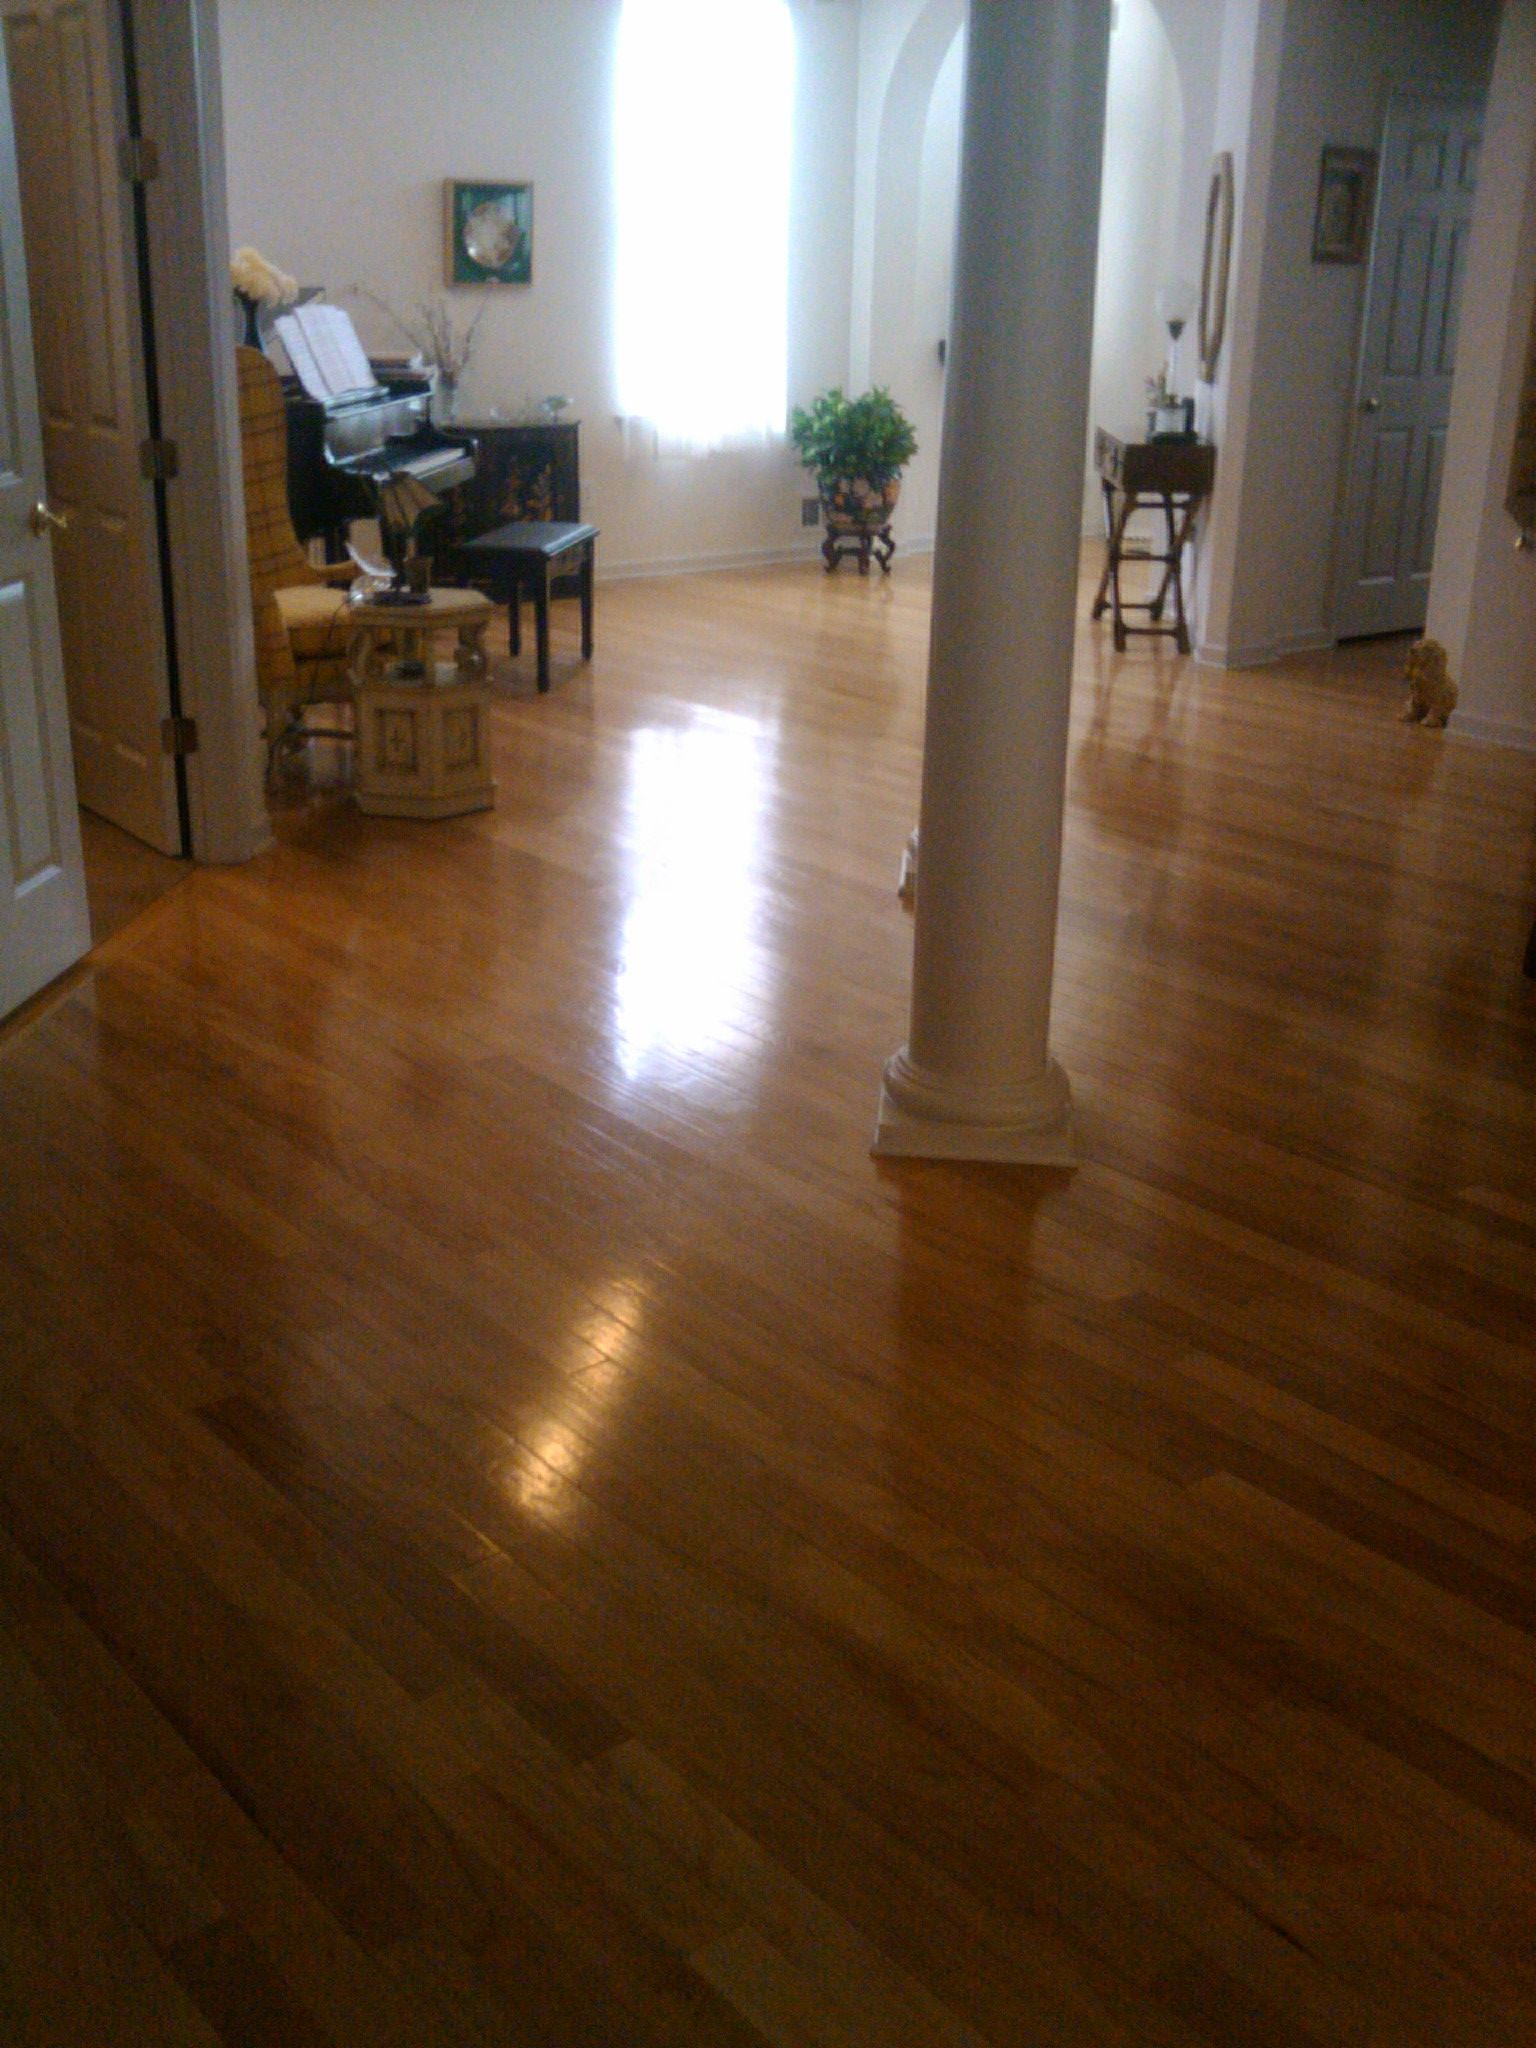 How To Clean Really Dirty Hardwood Floors Without Water Dab A Quarter Sized Drop